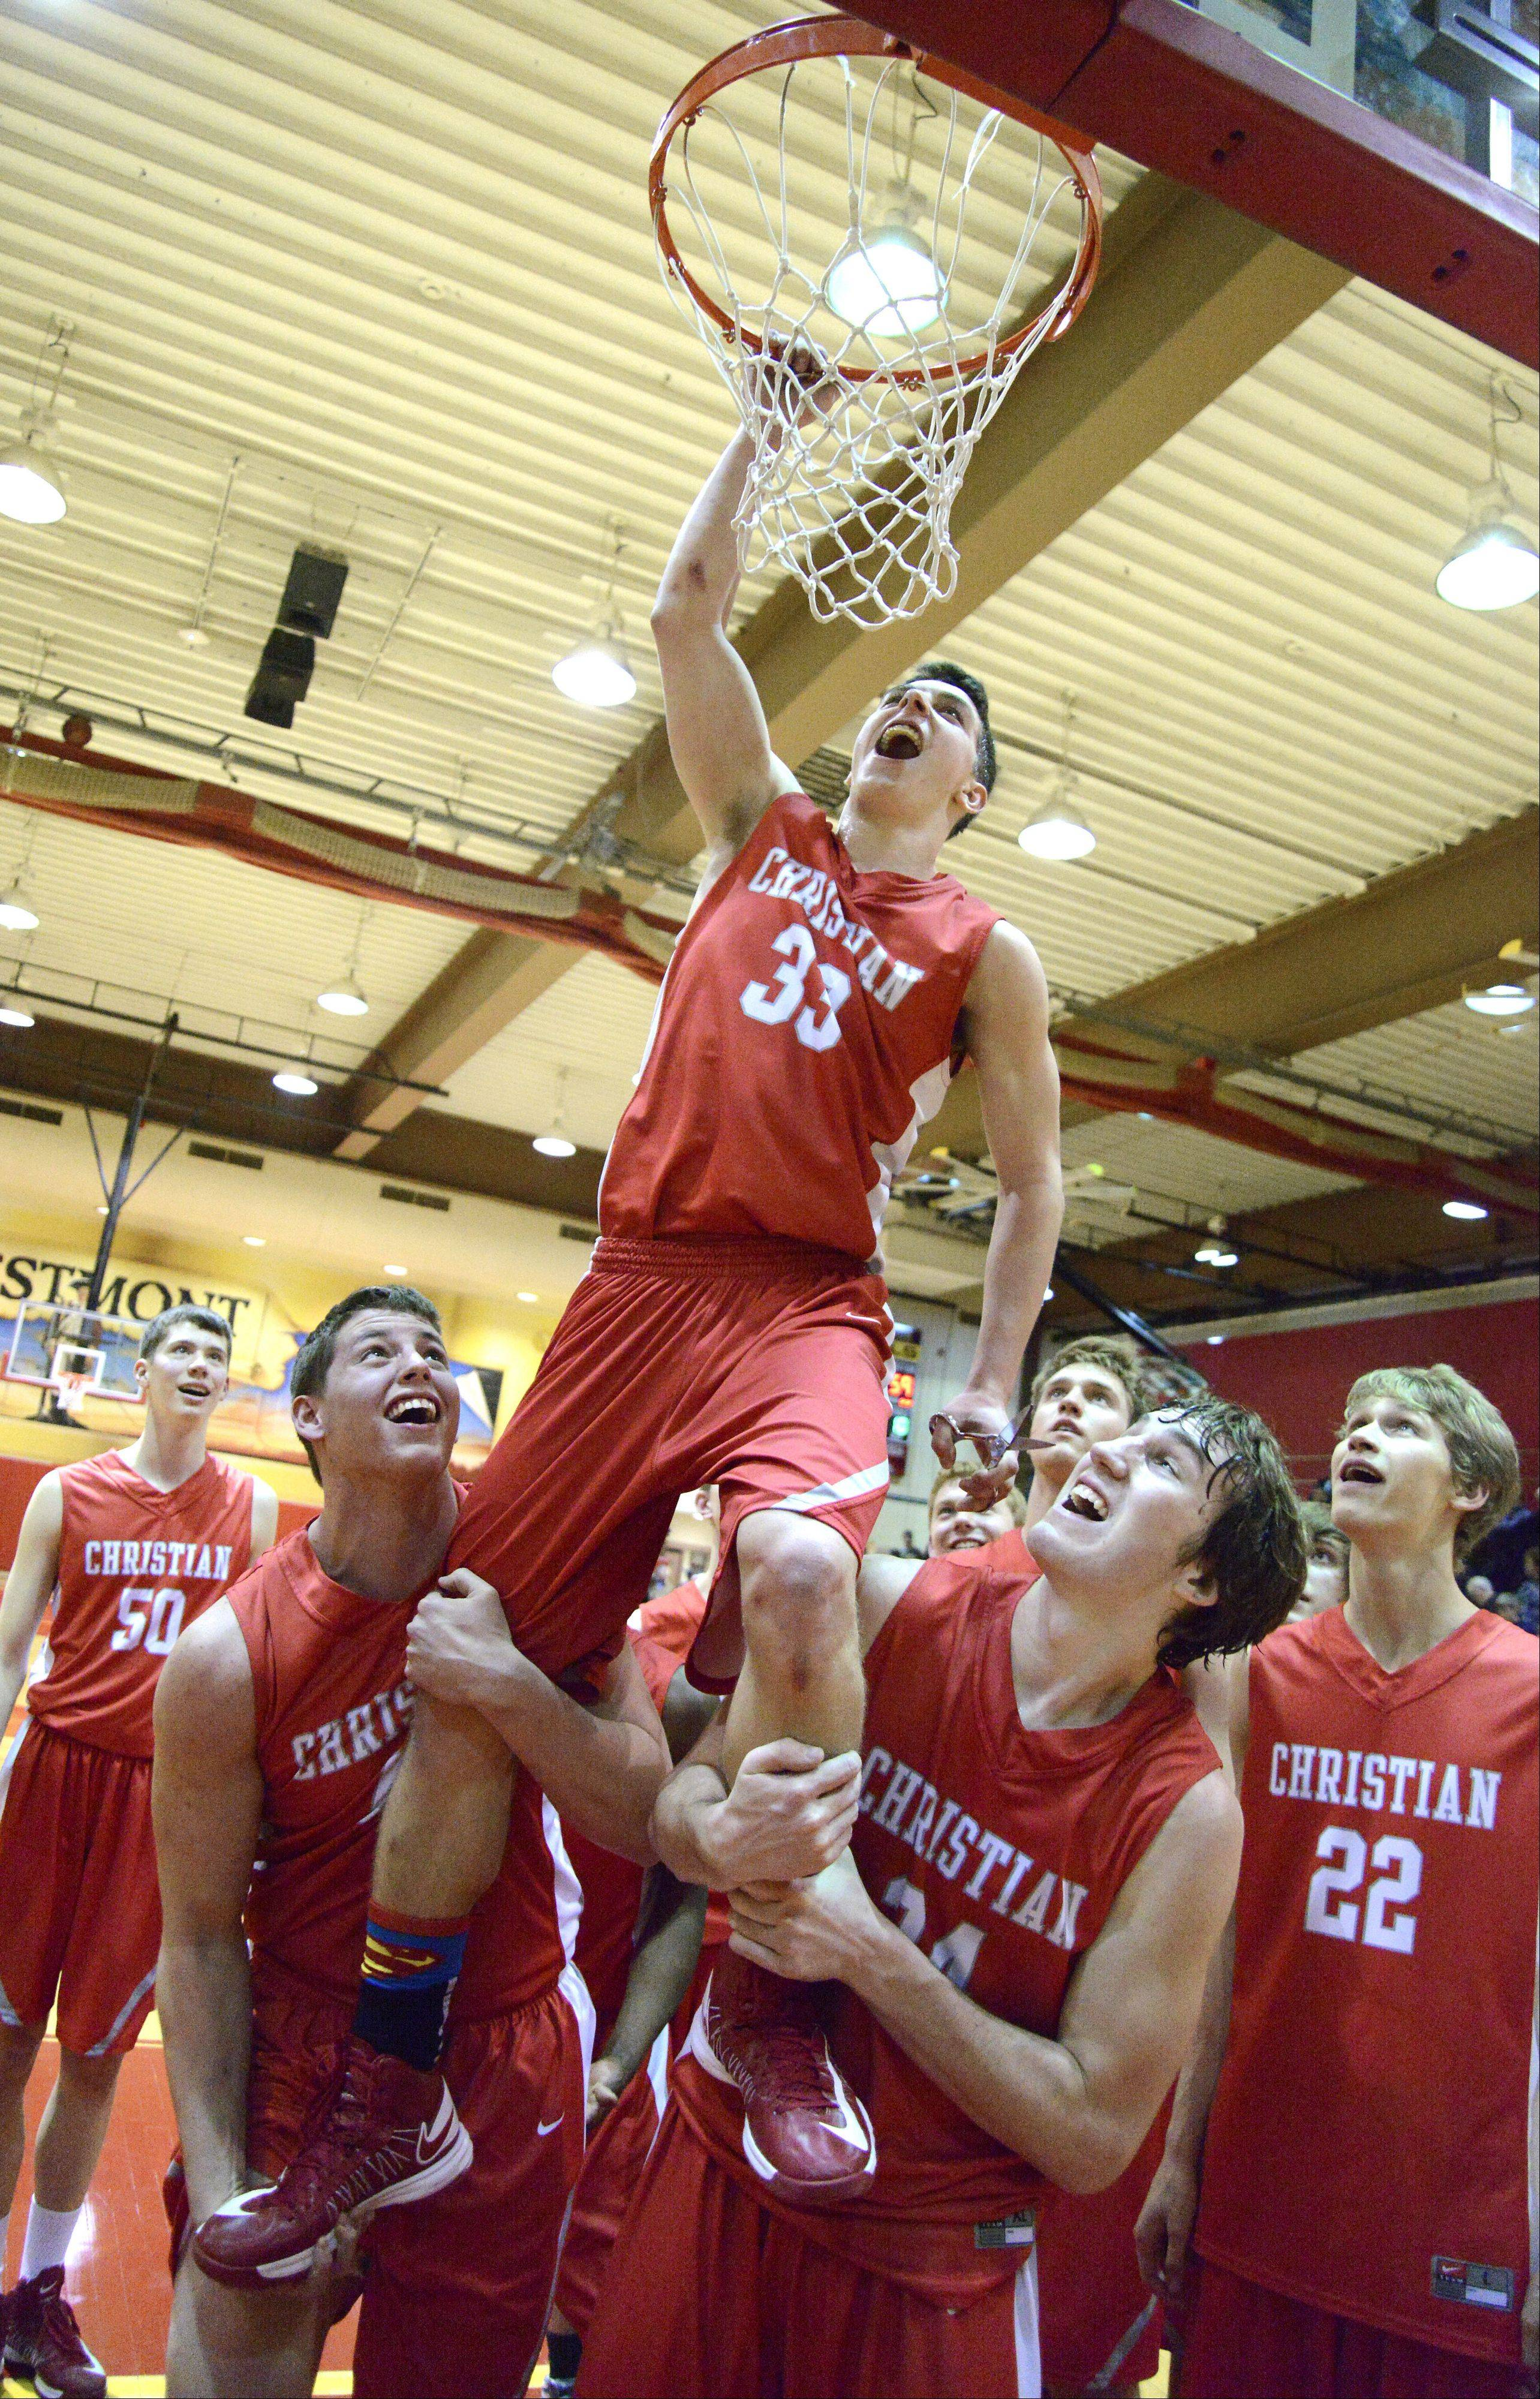 Aurora Christian's Ryan Suttle is hoisted by teammates Jake Gelbato, left, and Cory Windle to be the first to cut the hoop. Suttle sunk the game winning shot.